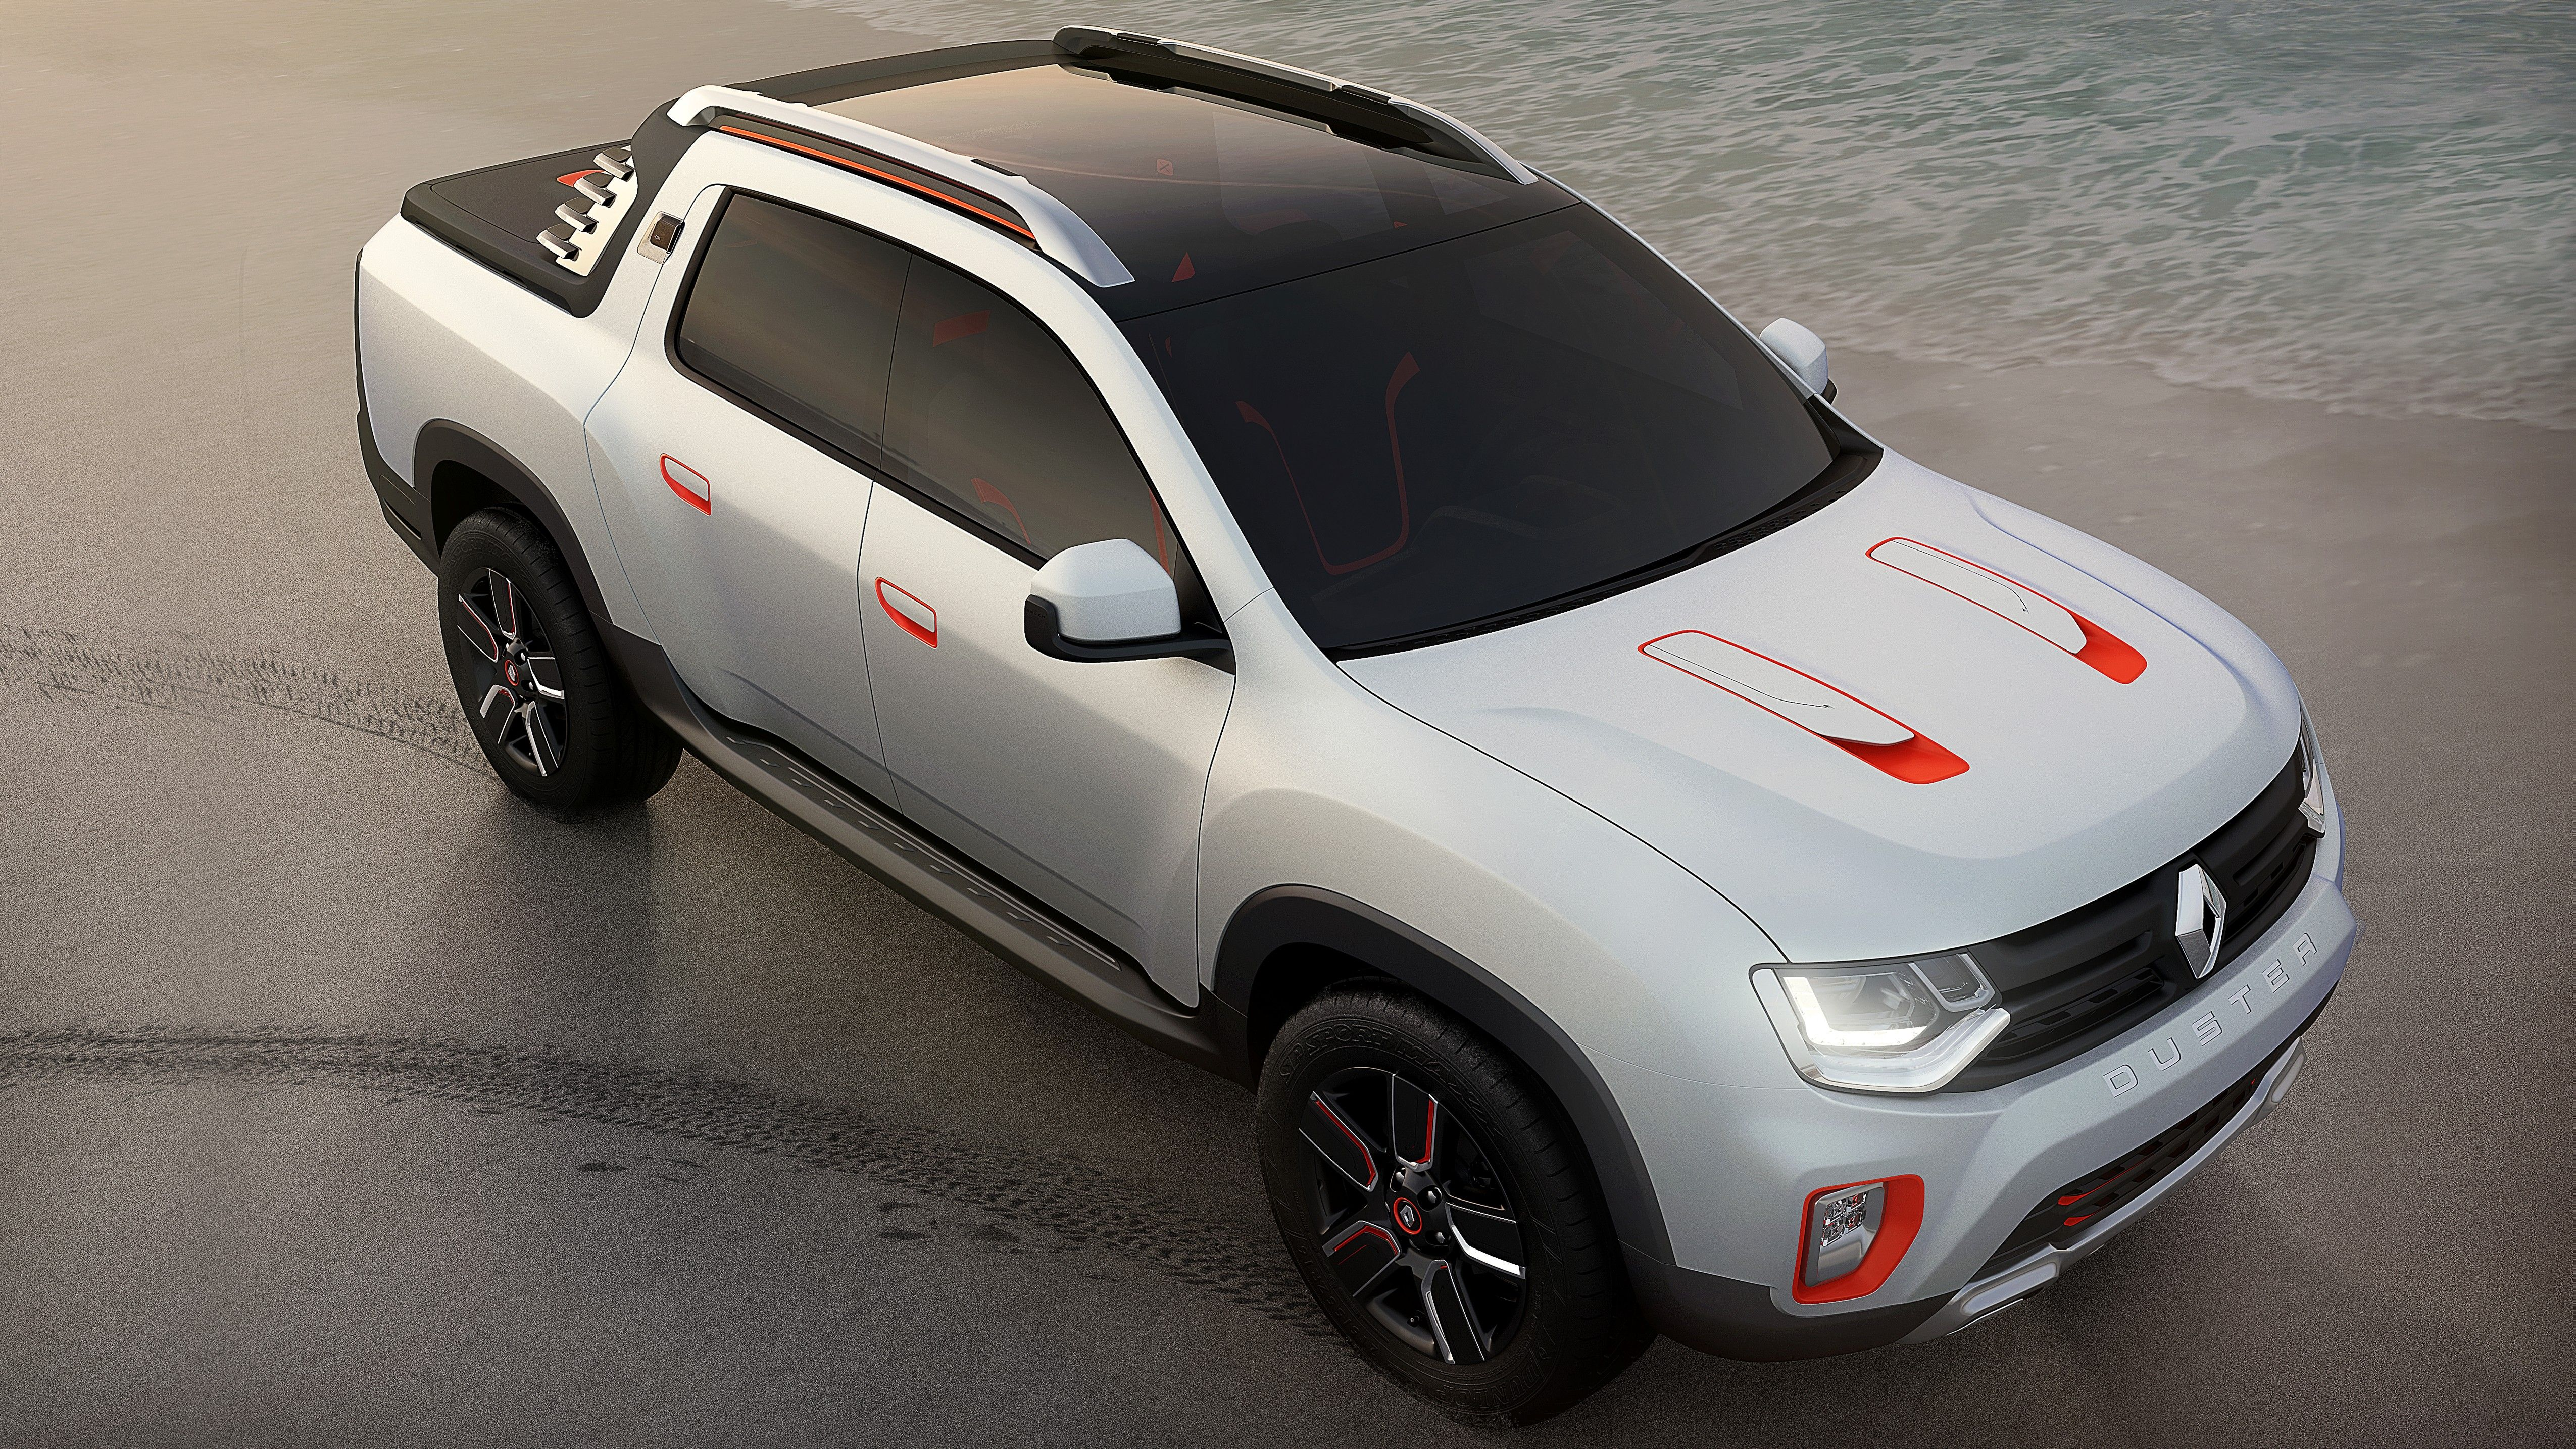 renault is set to unveil the duster oroch show car in a world